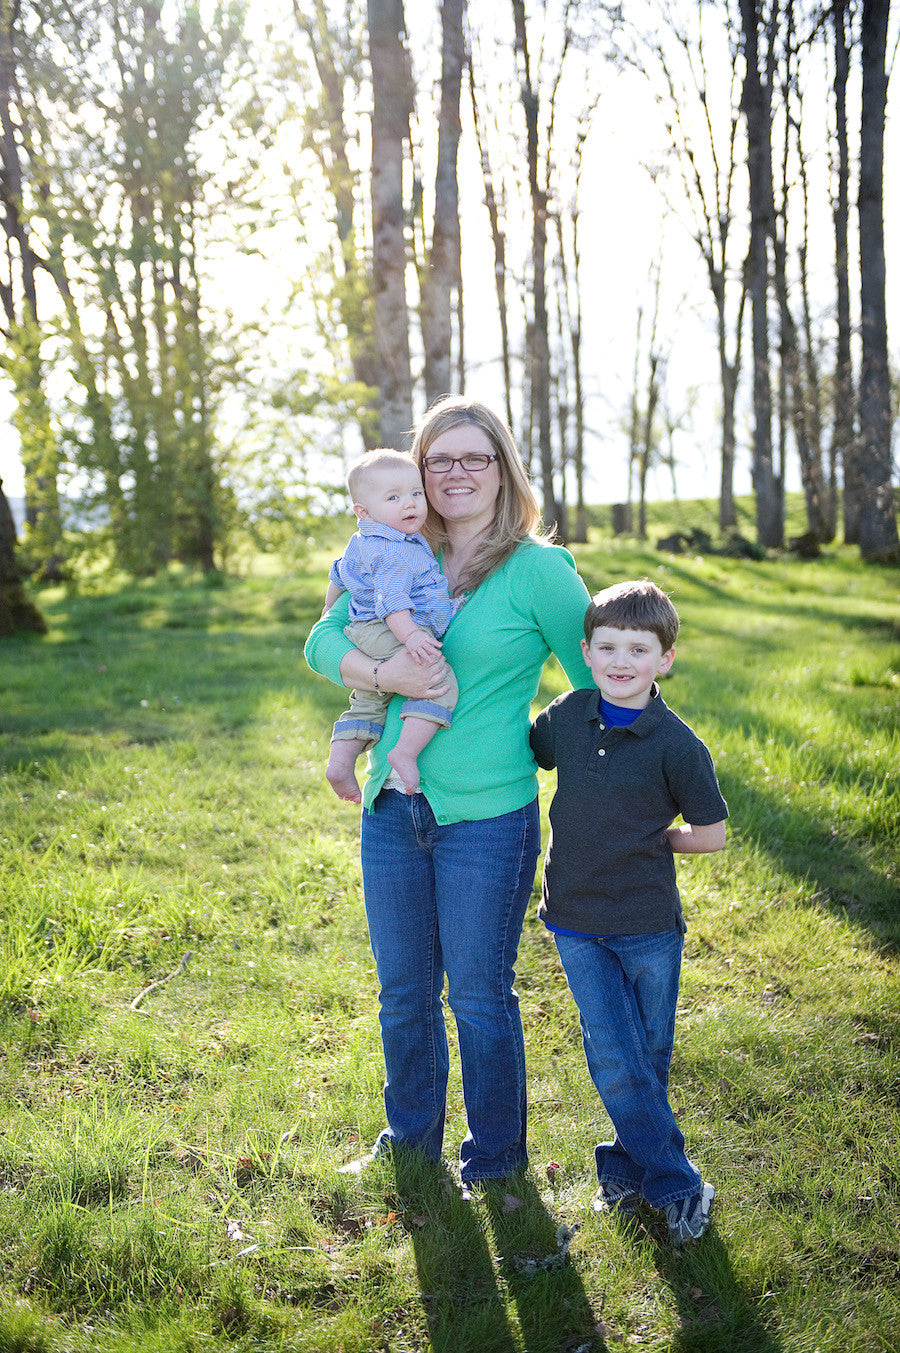 We are celebrating Moms and Mother's Day again! - Meet Staci